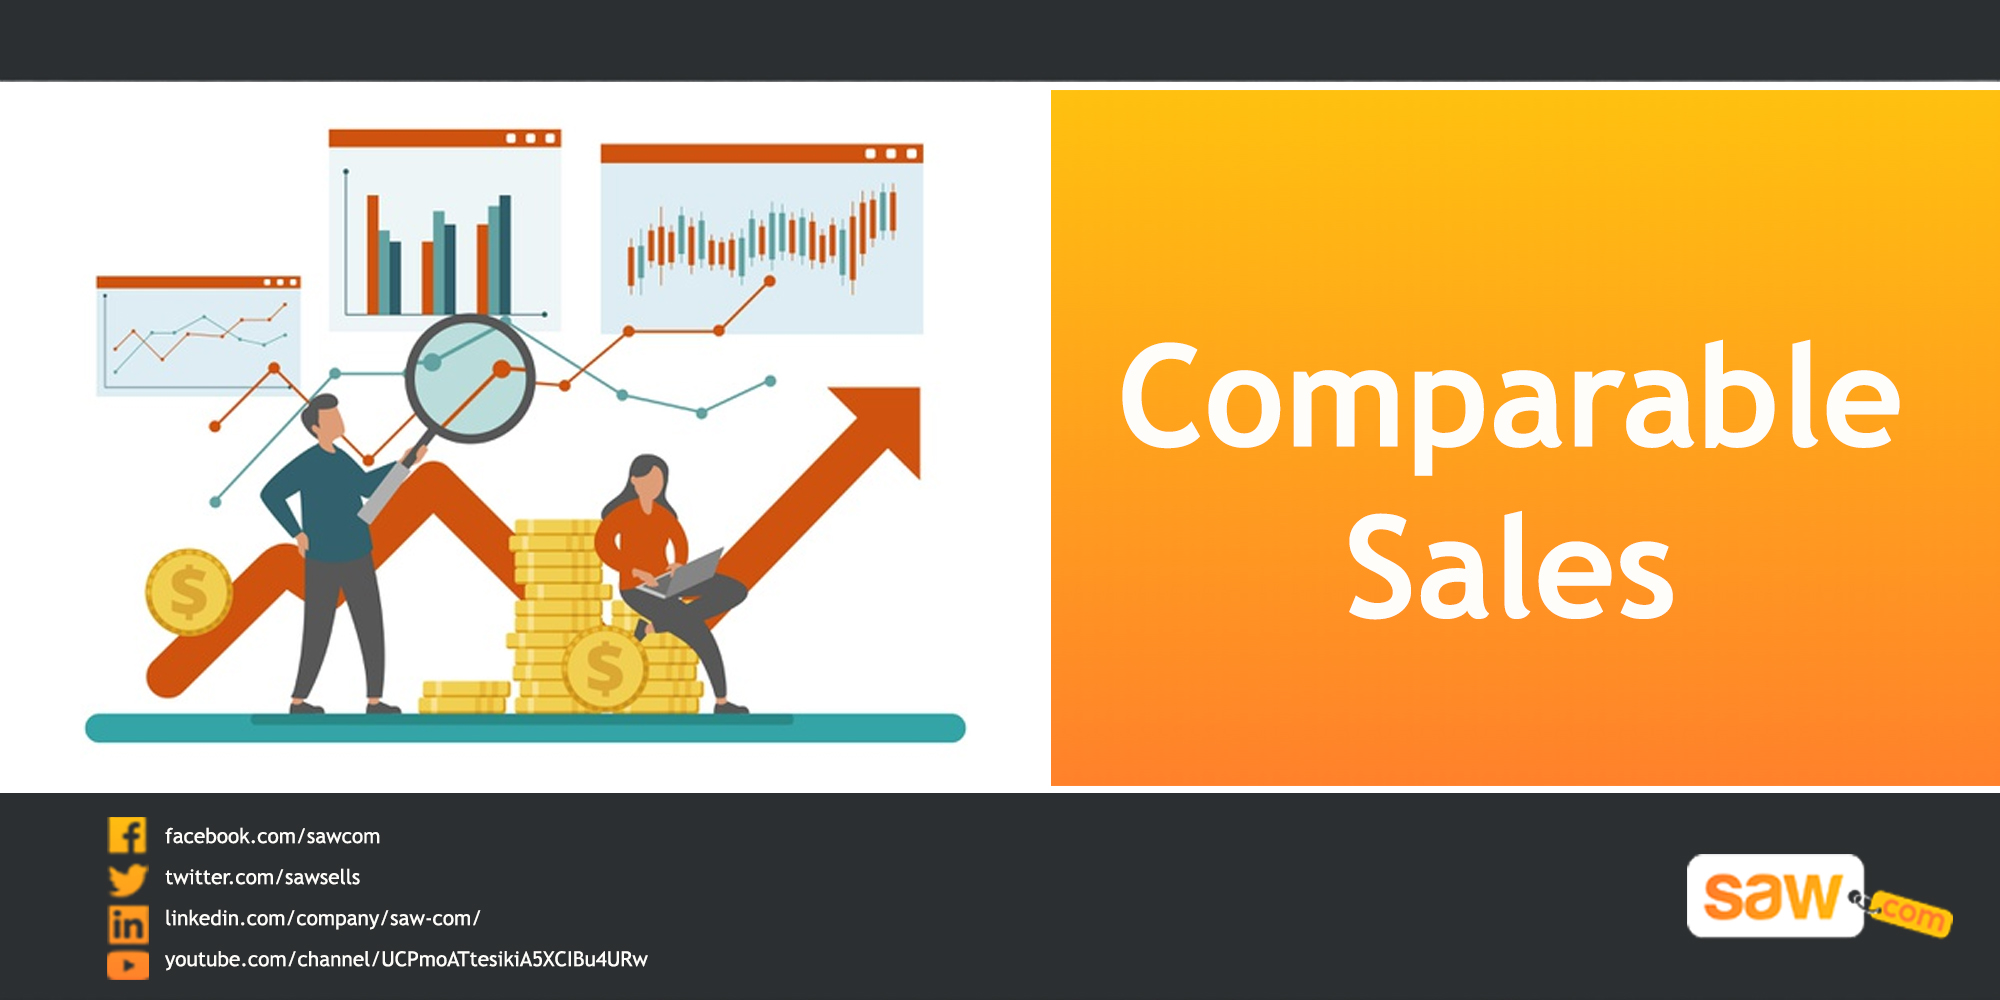 Saw Video – Comparable Sales